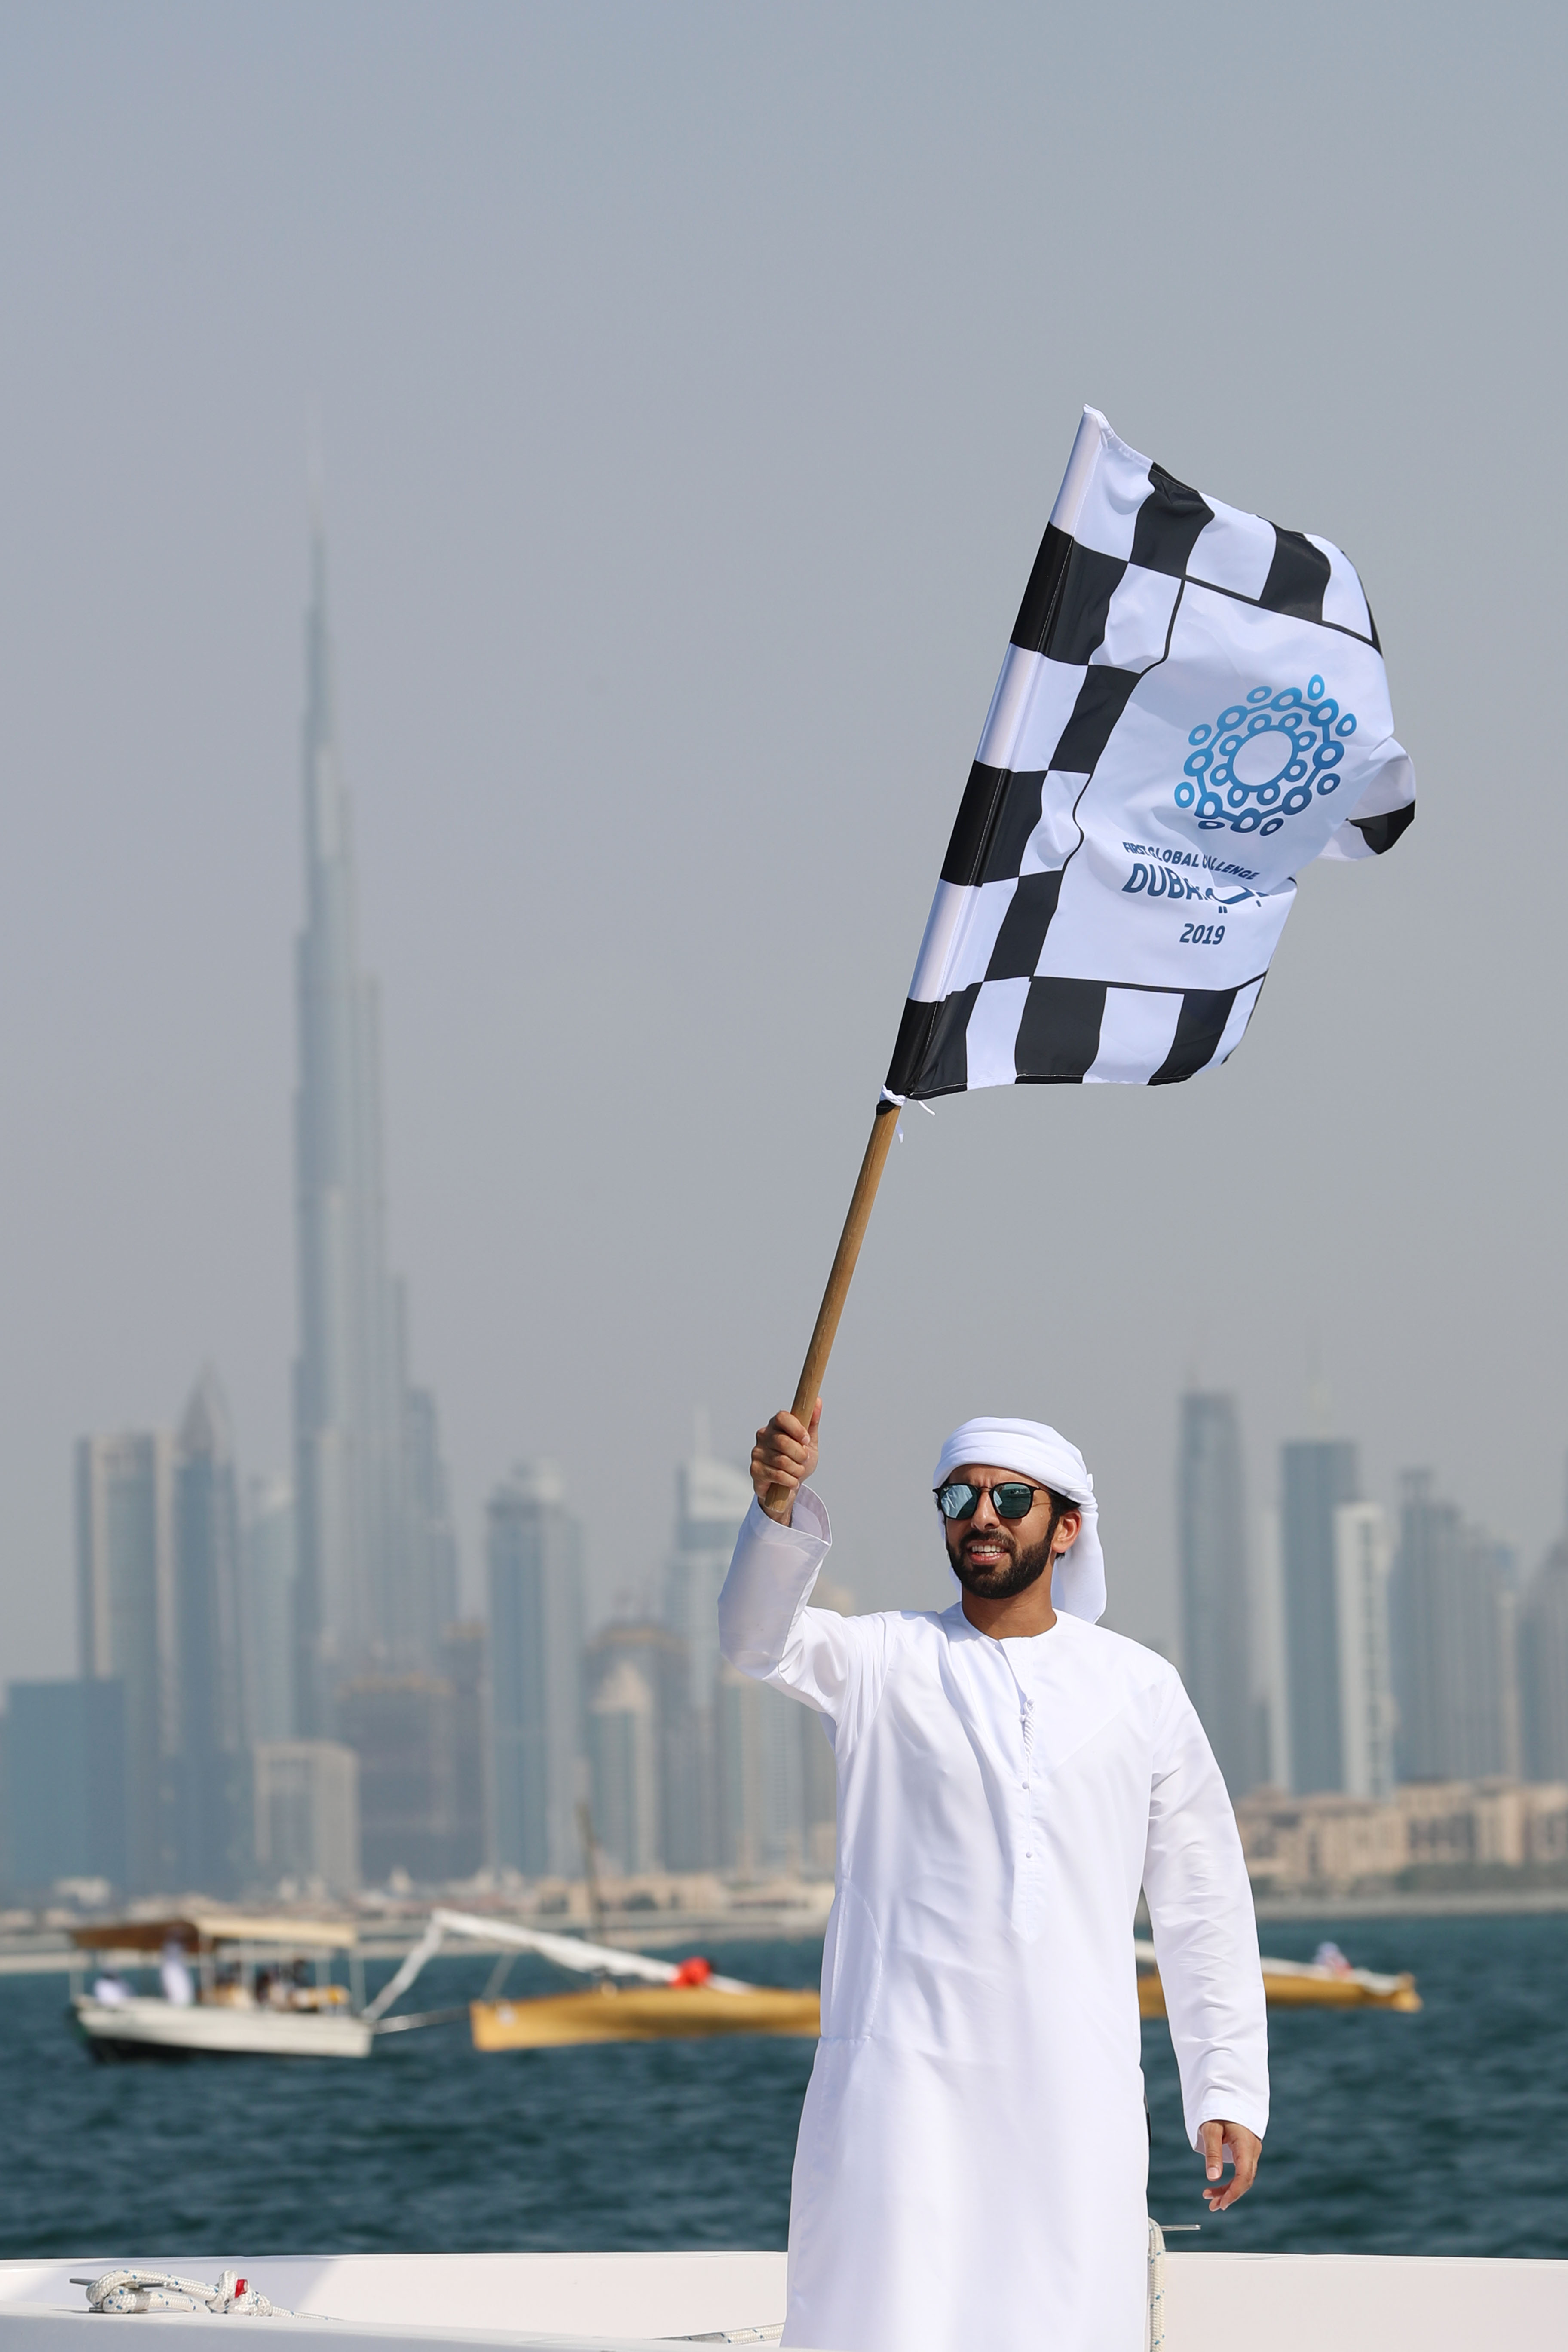 Blue Caravan sails on the shores of Dubai today to raise awareness of Ocean Clean-Up